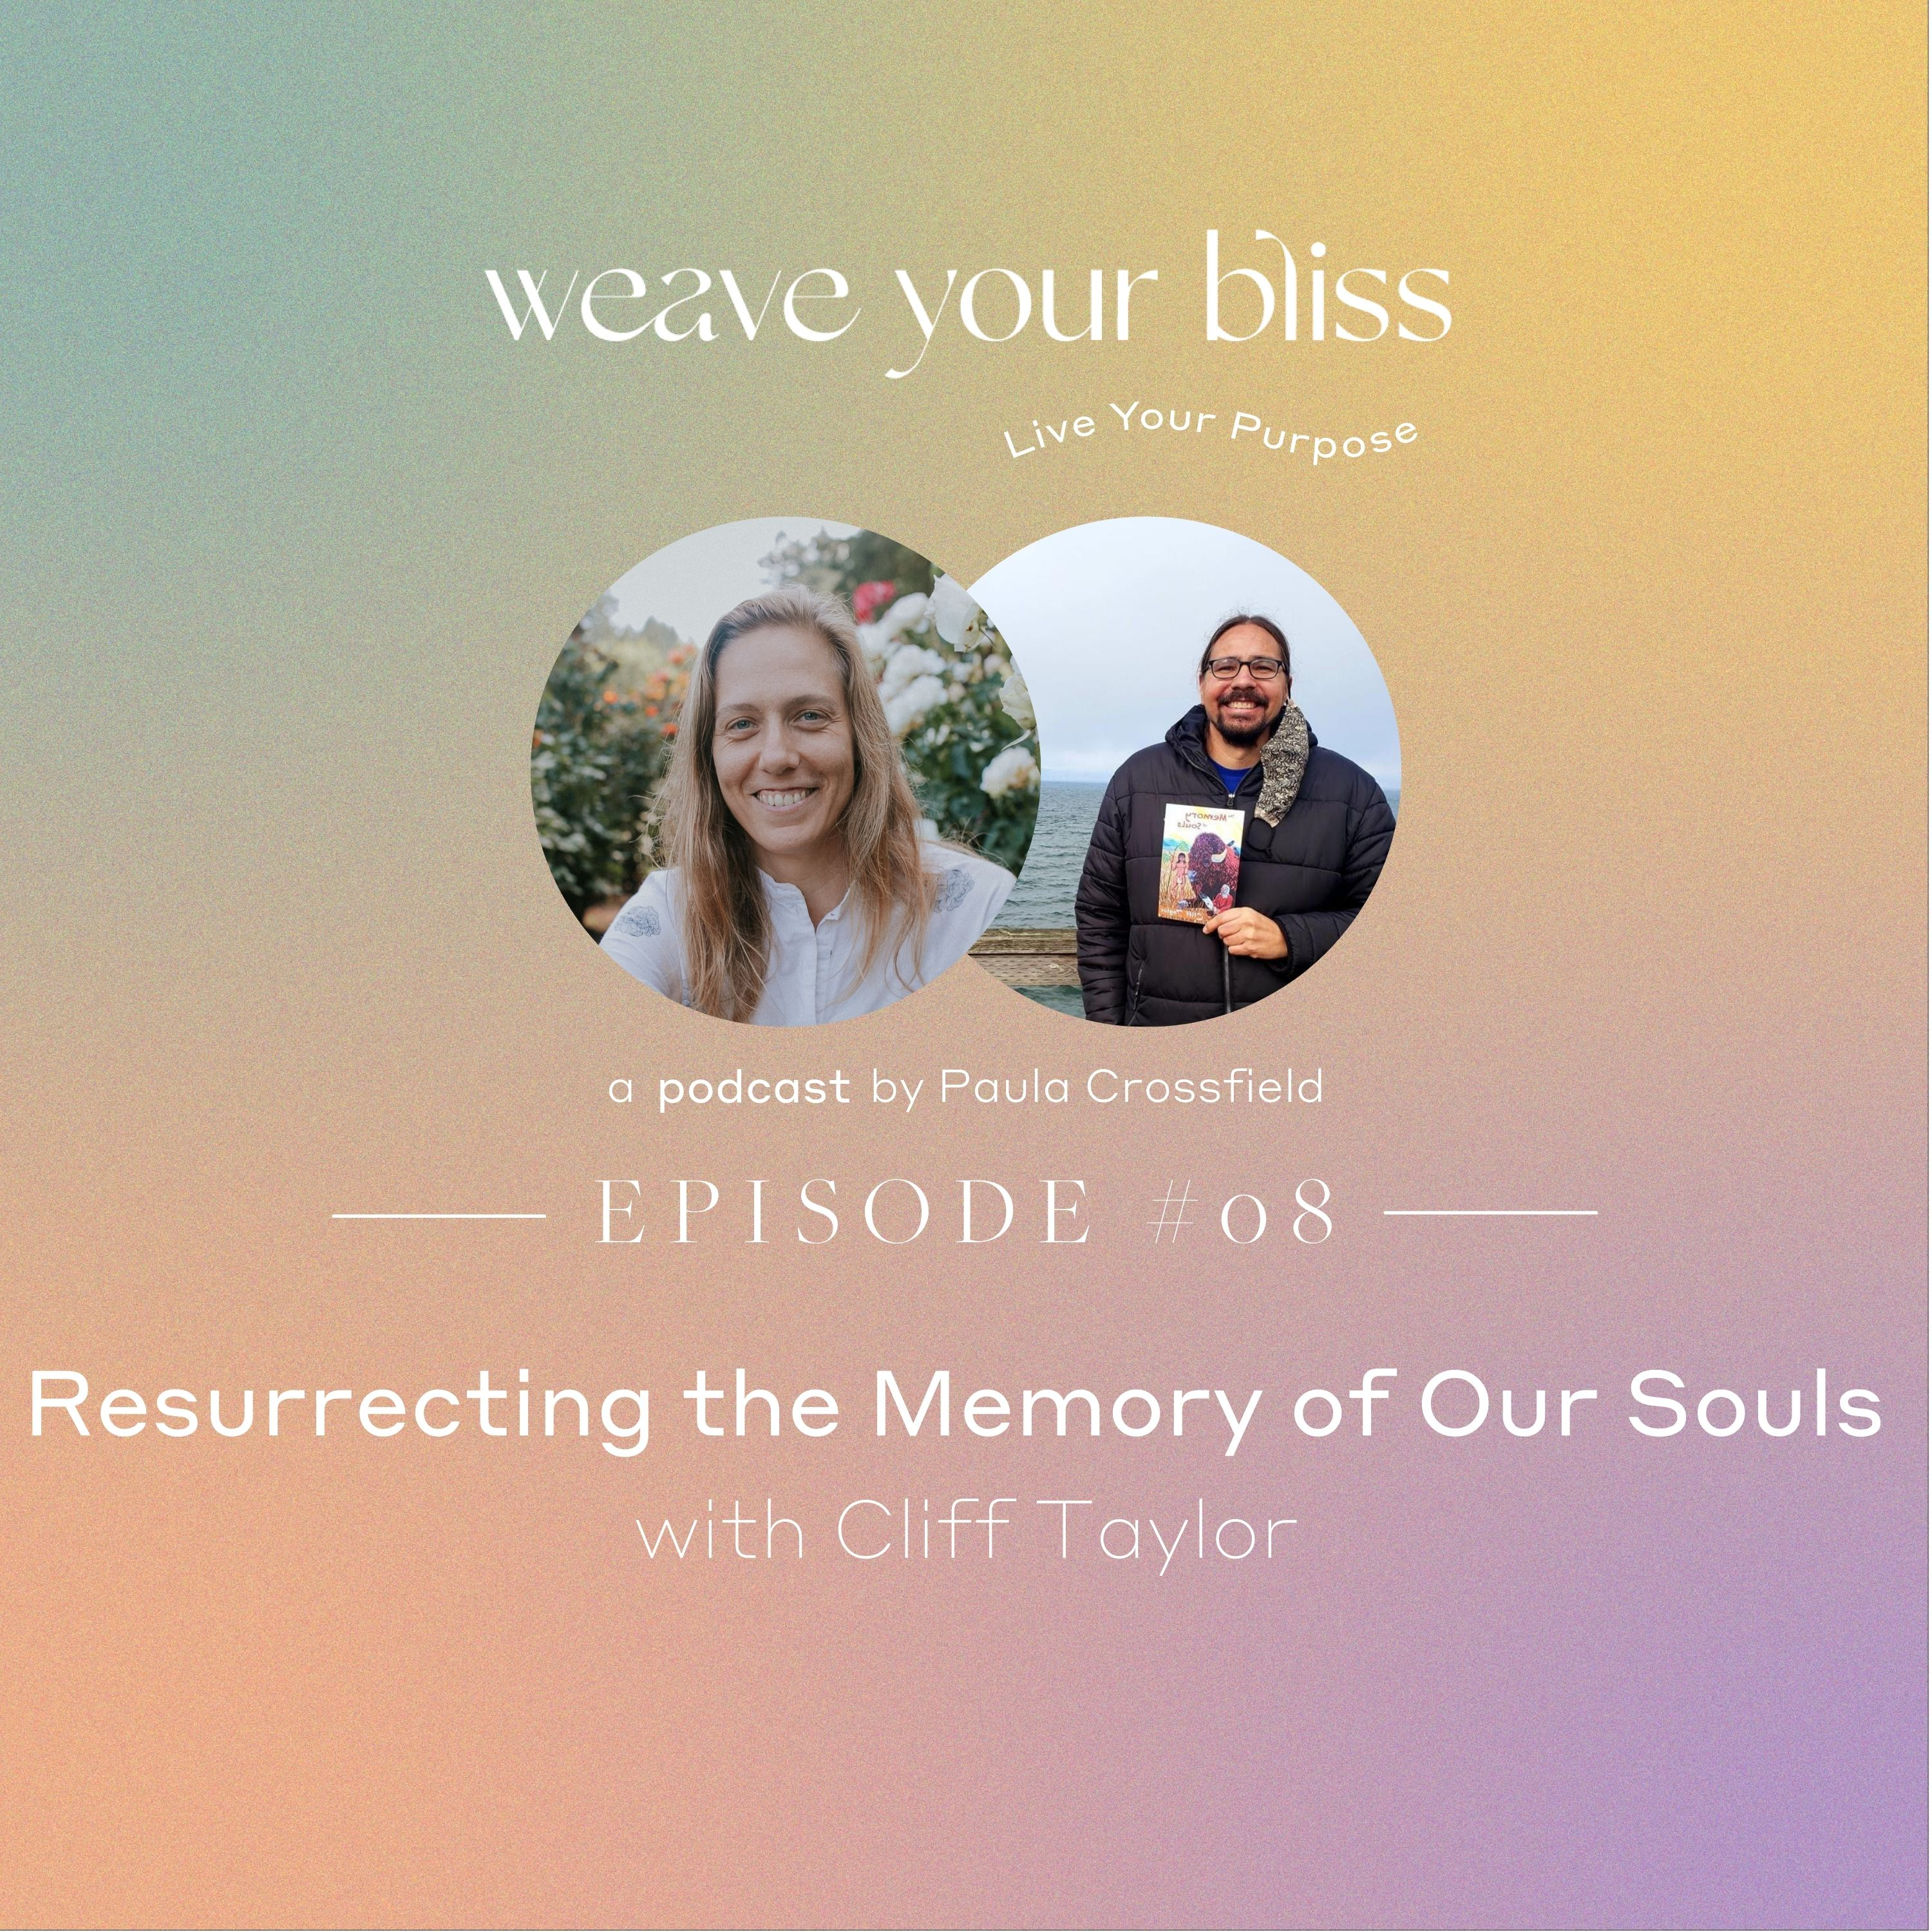 08: Resurrecting the Memory of Our Souls with Cliff Taylor